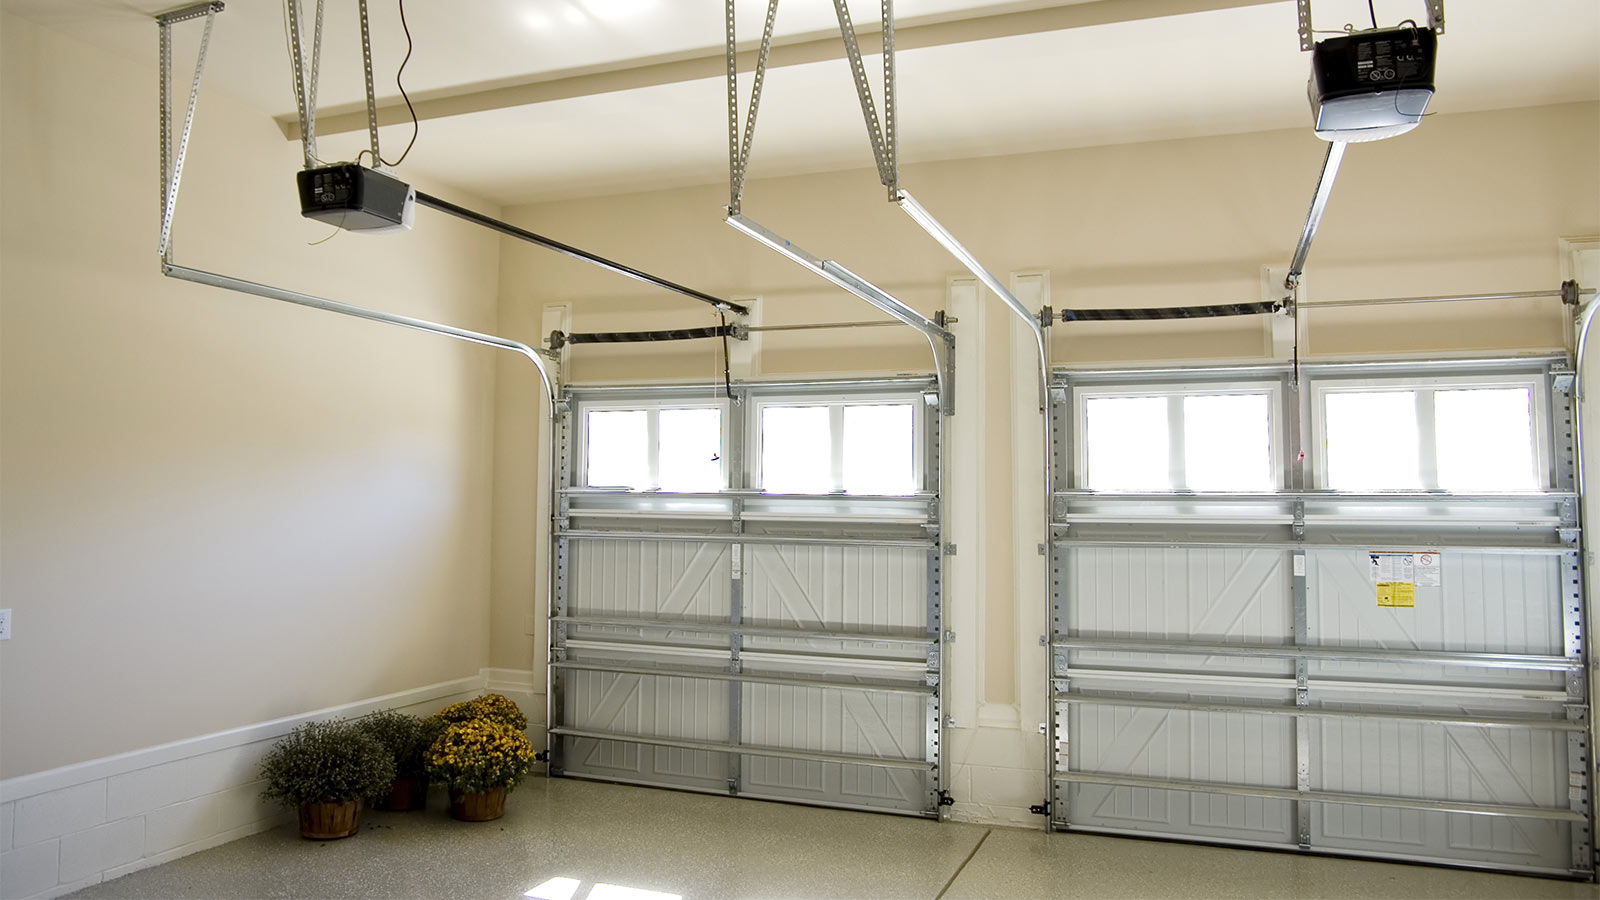 Sectional Garage Doors from Electric Roller Garage Doors Southend suppliers.